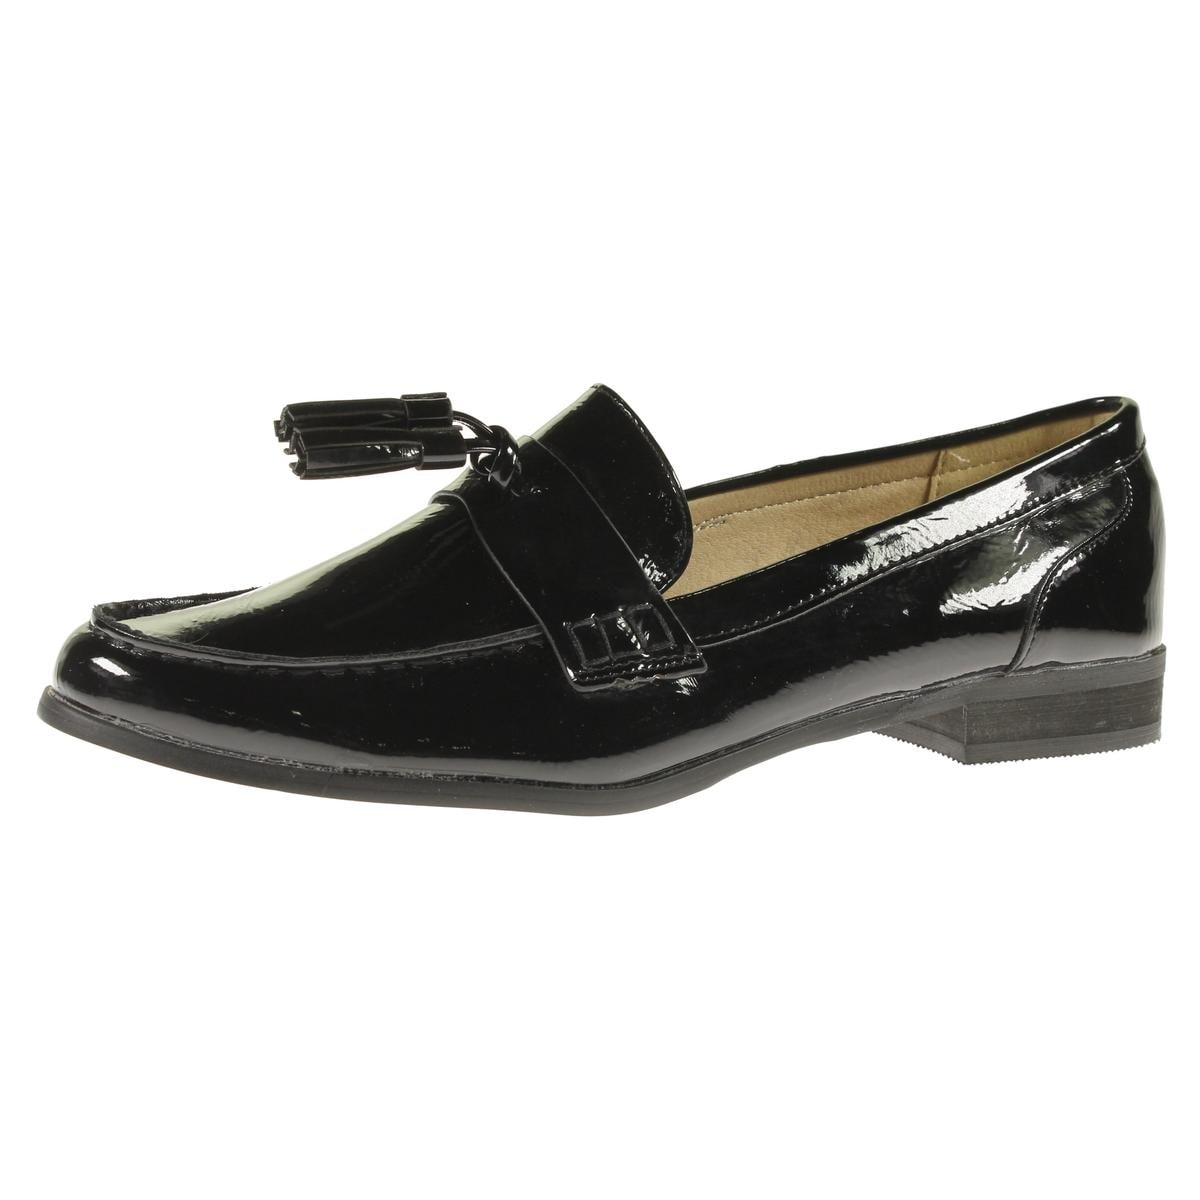 Steve Madden Womens Franco Loafers Patent Tassel (2 options available)